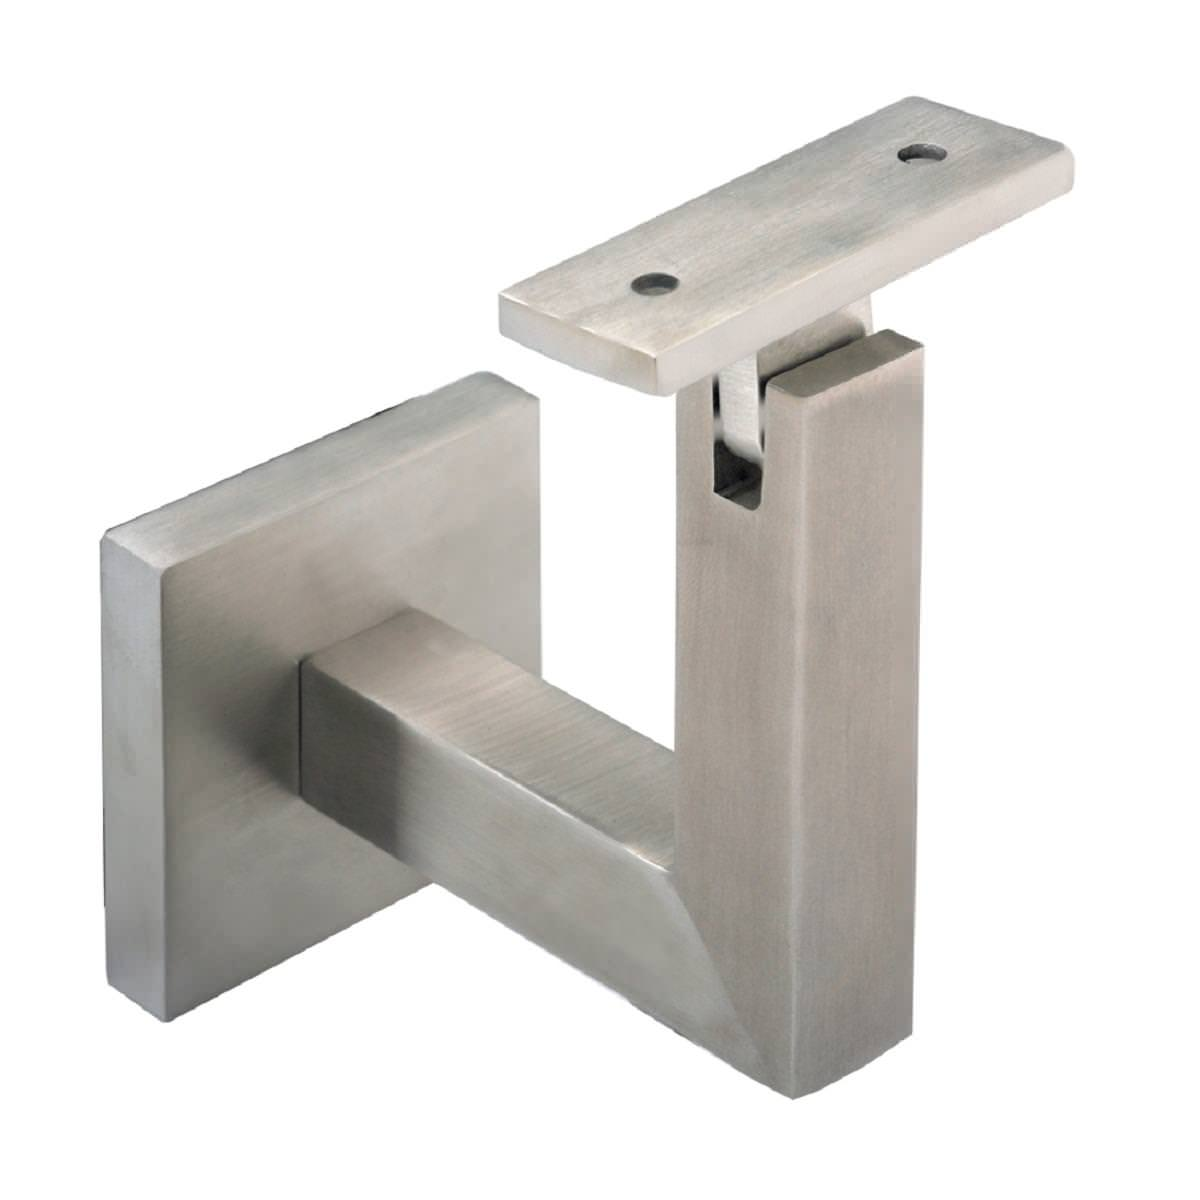 Handrail Brackets Spacing